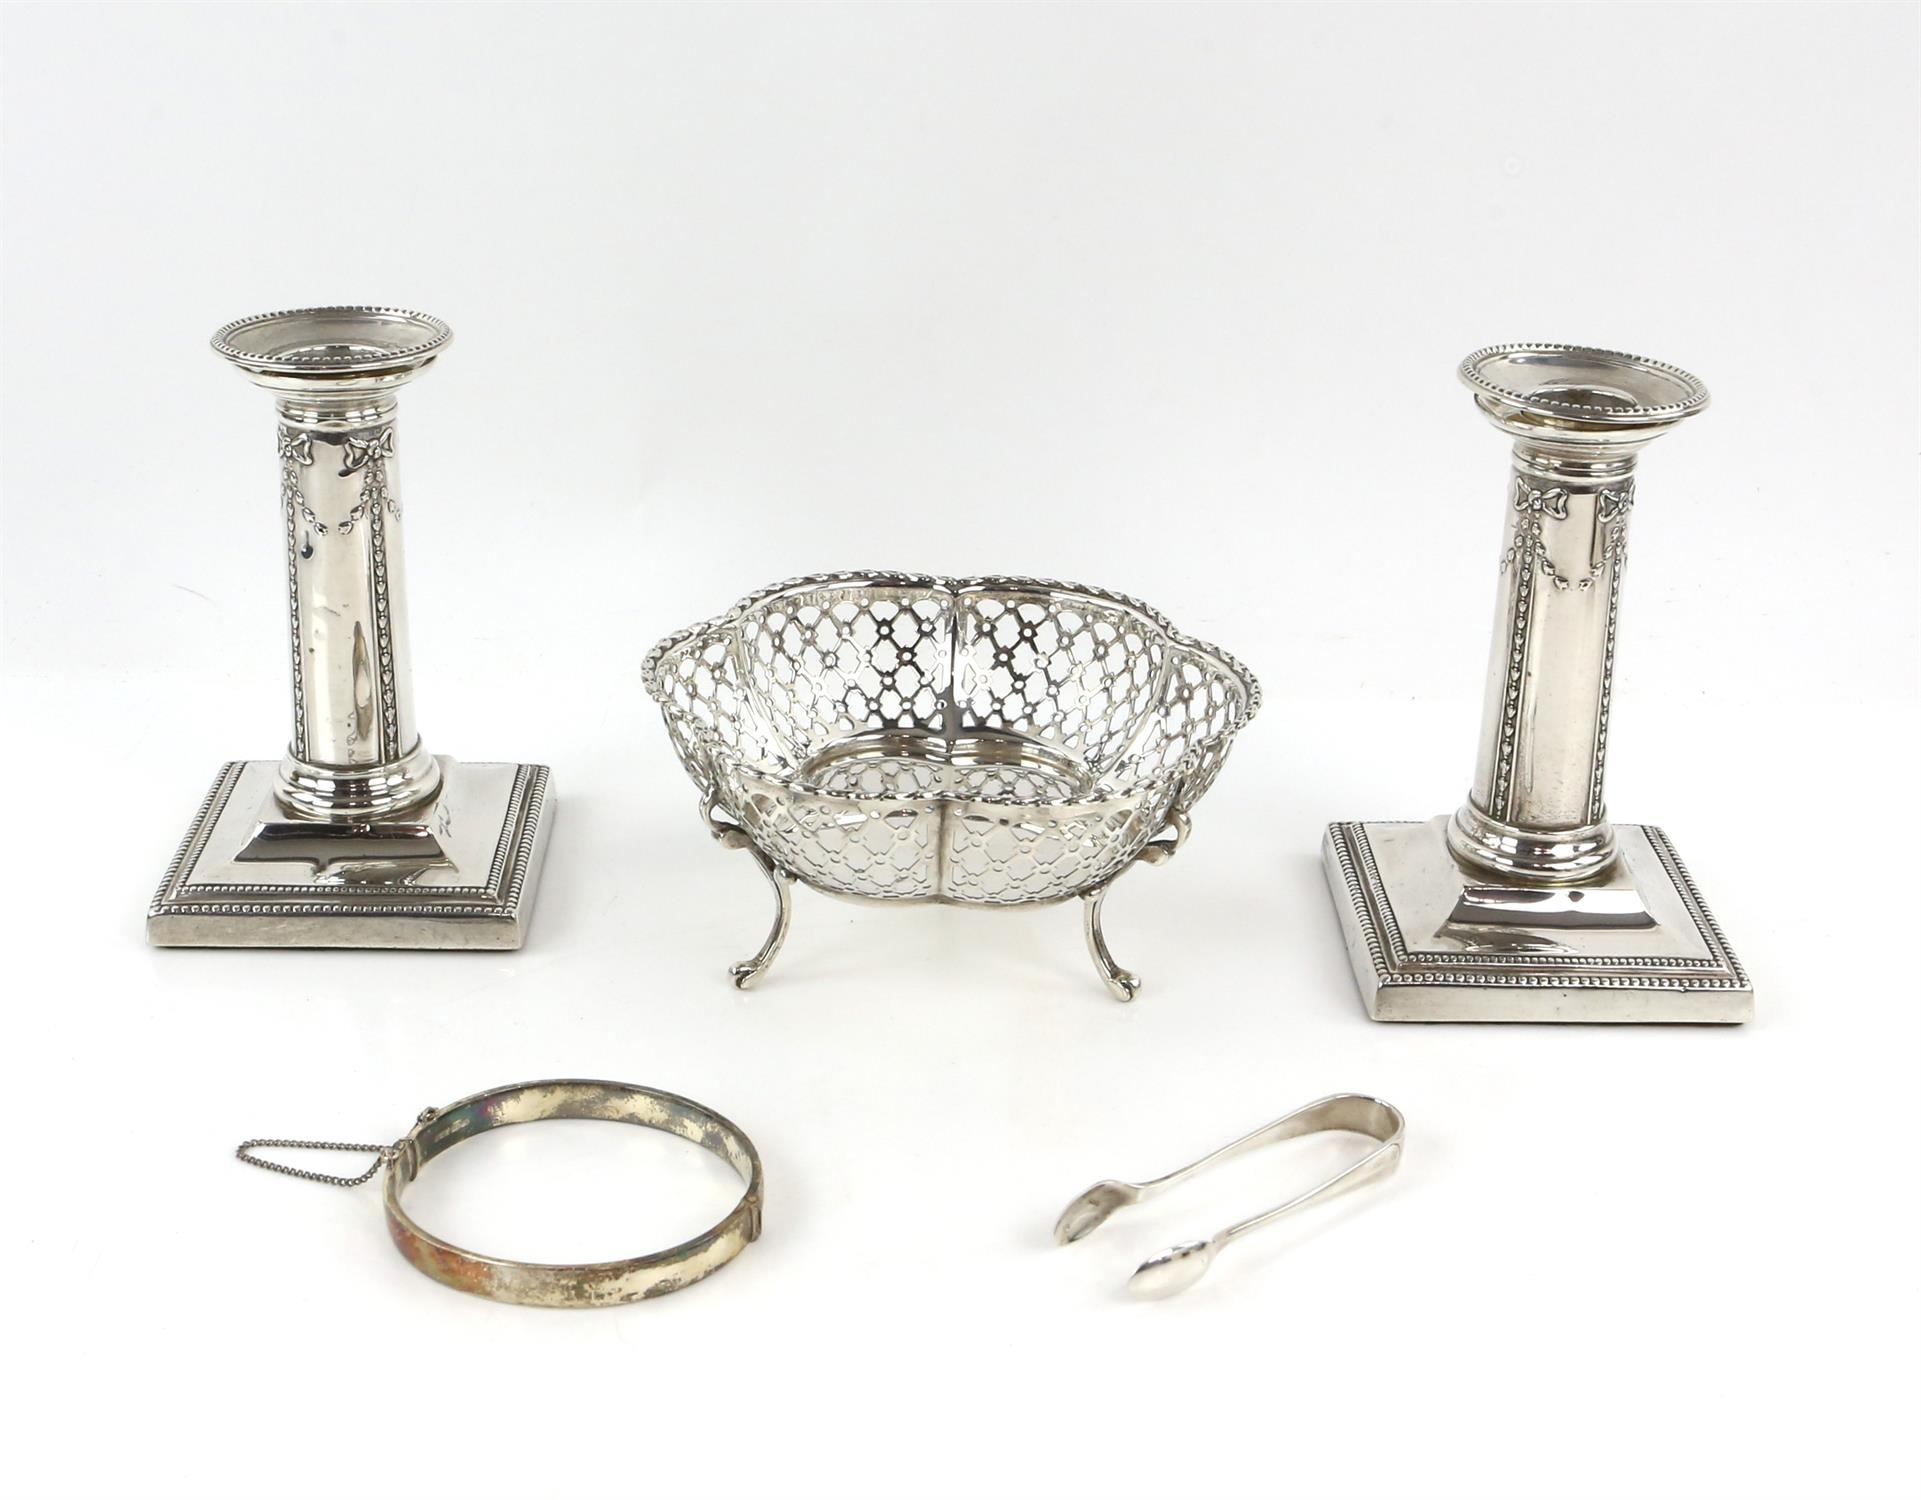 Pair of Victorian silver candlesticks with ribbon and swag decoration by Thomas Bradbury & Sons